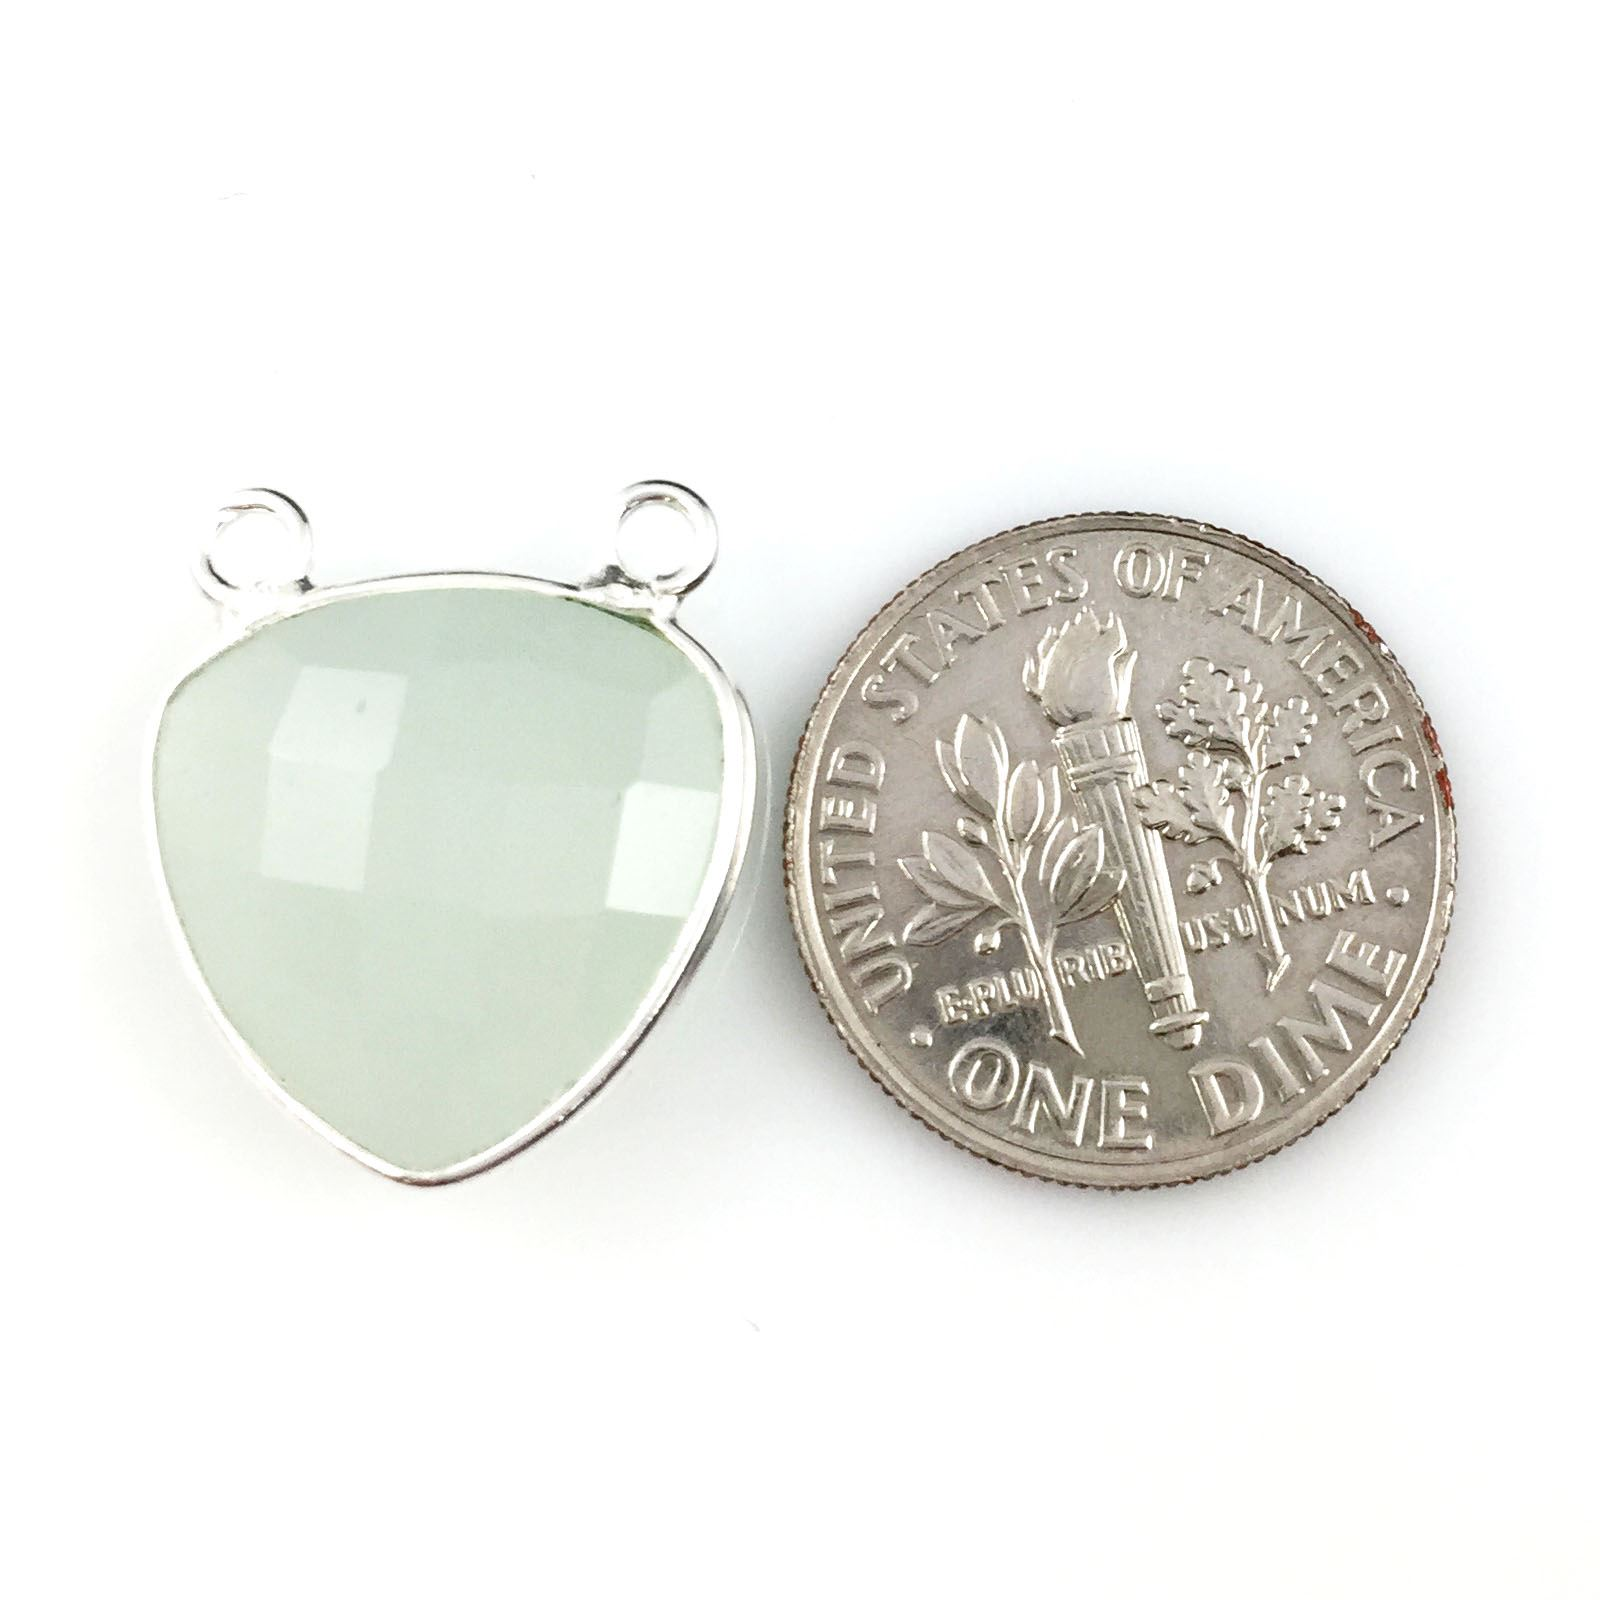 Bezel Gemstone Connector Pendant - Aqua Chalcedony - Sterling Silver - Small Trillion Shaped Faceted - 15mm - 1 piece